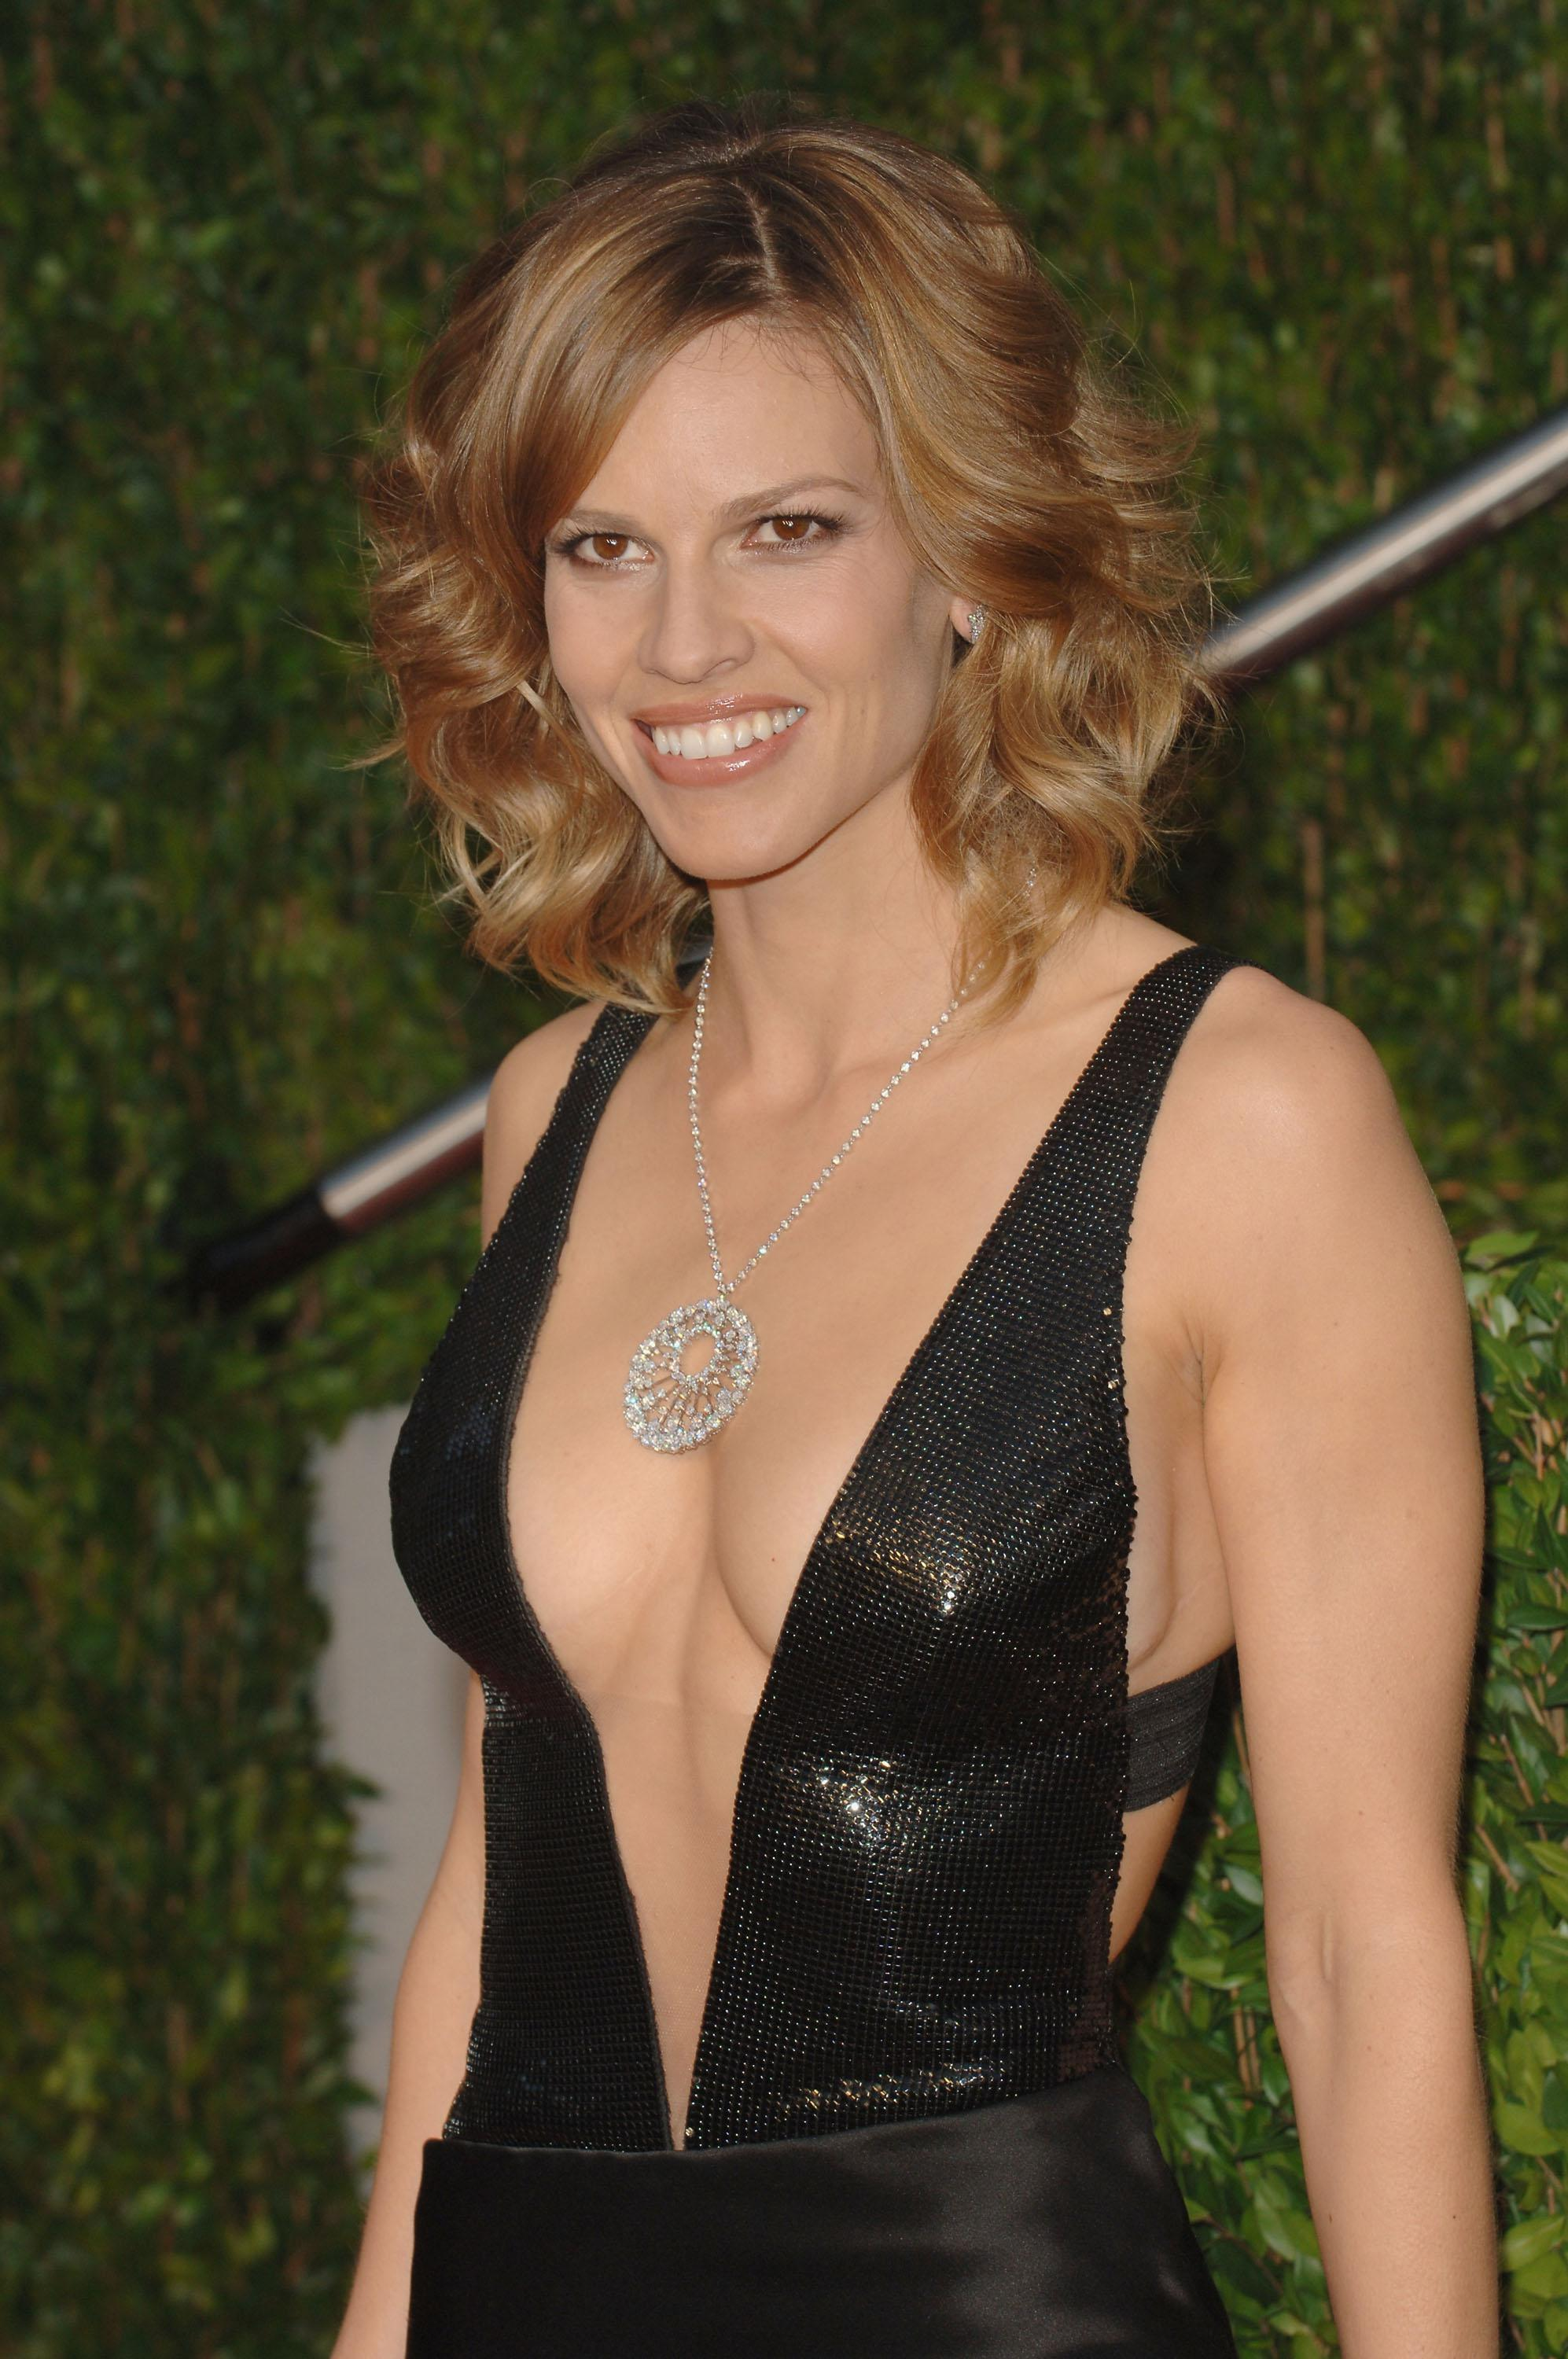 Hilary Swank Nude Page 2 Pictures Naked Oops Topless